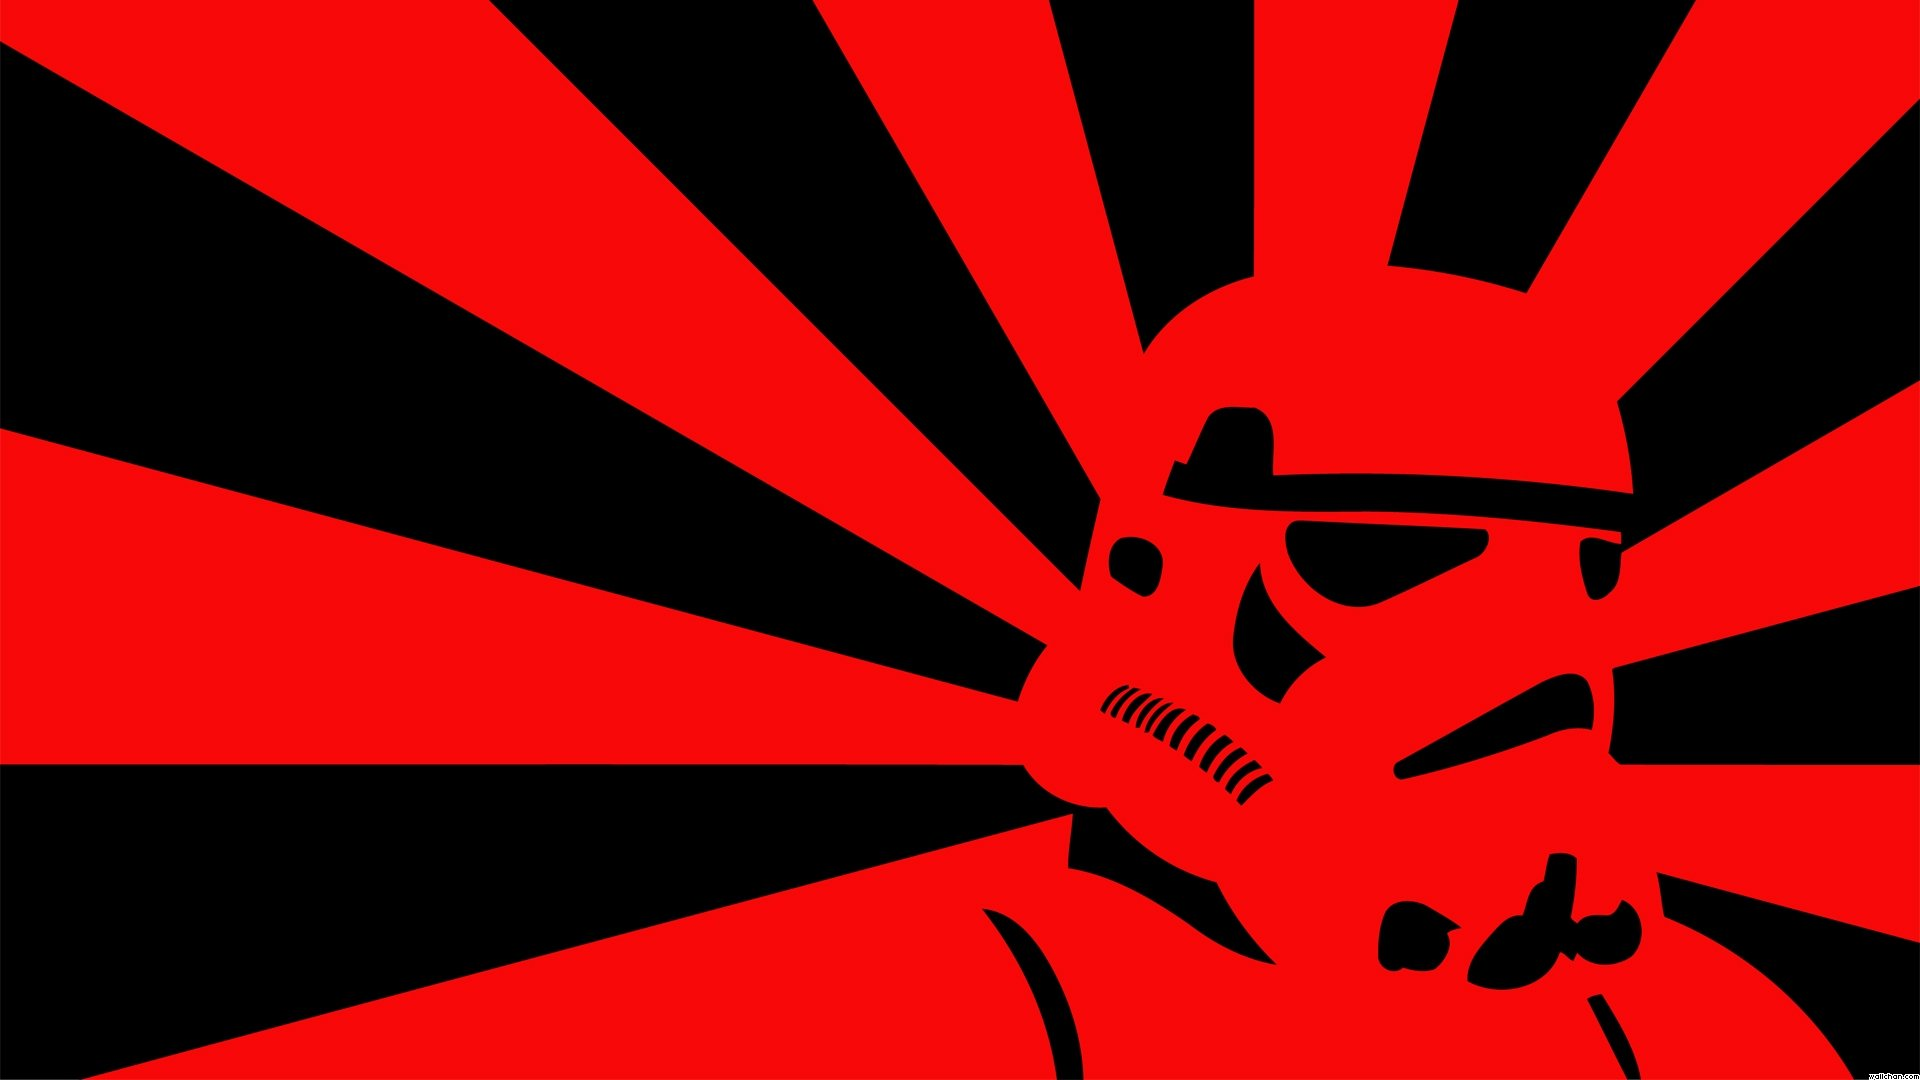 Stormtrooper Pop Art Wallpaper